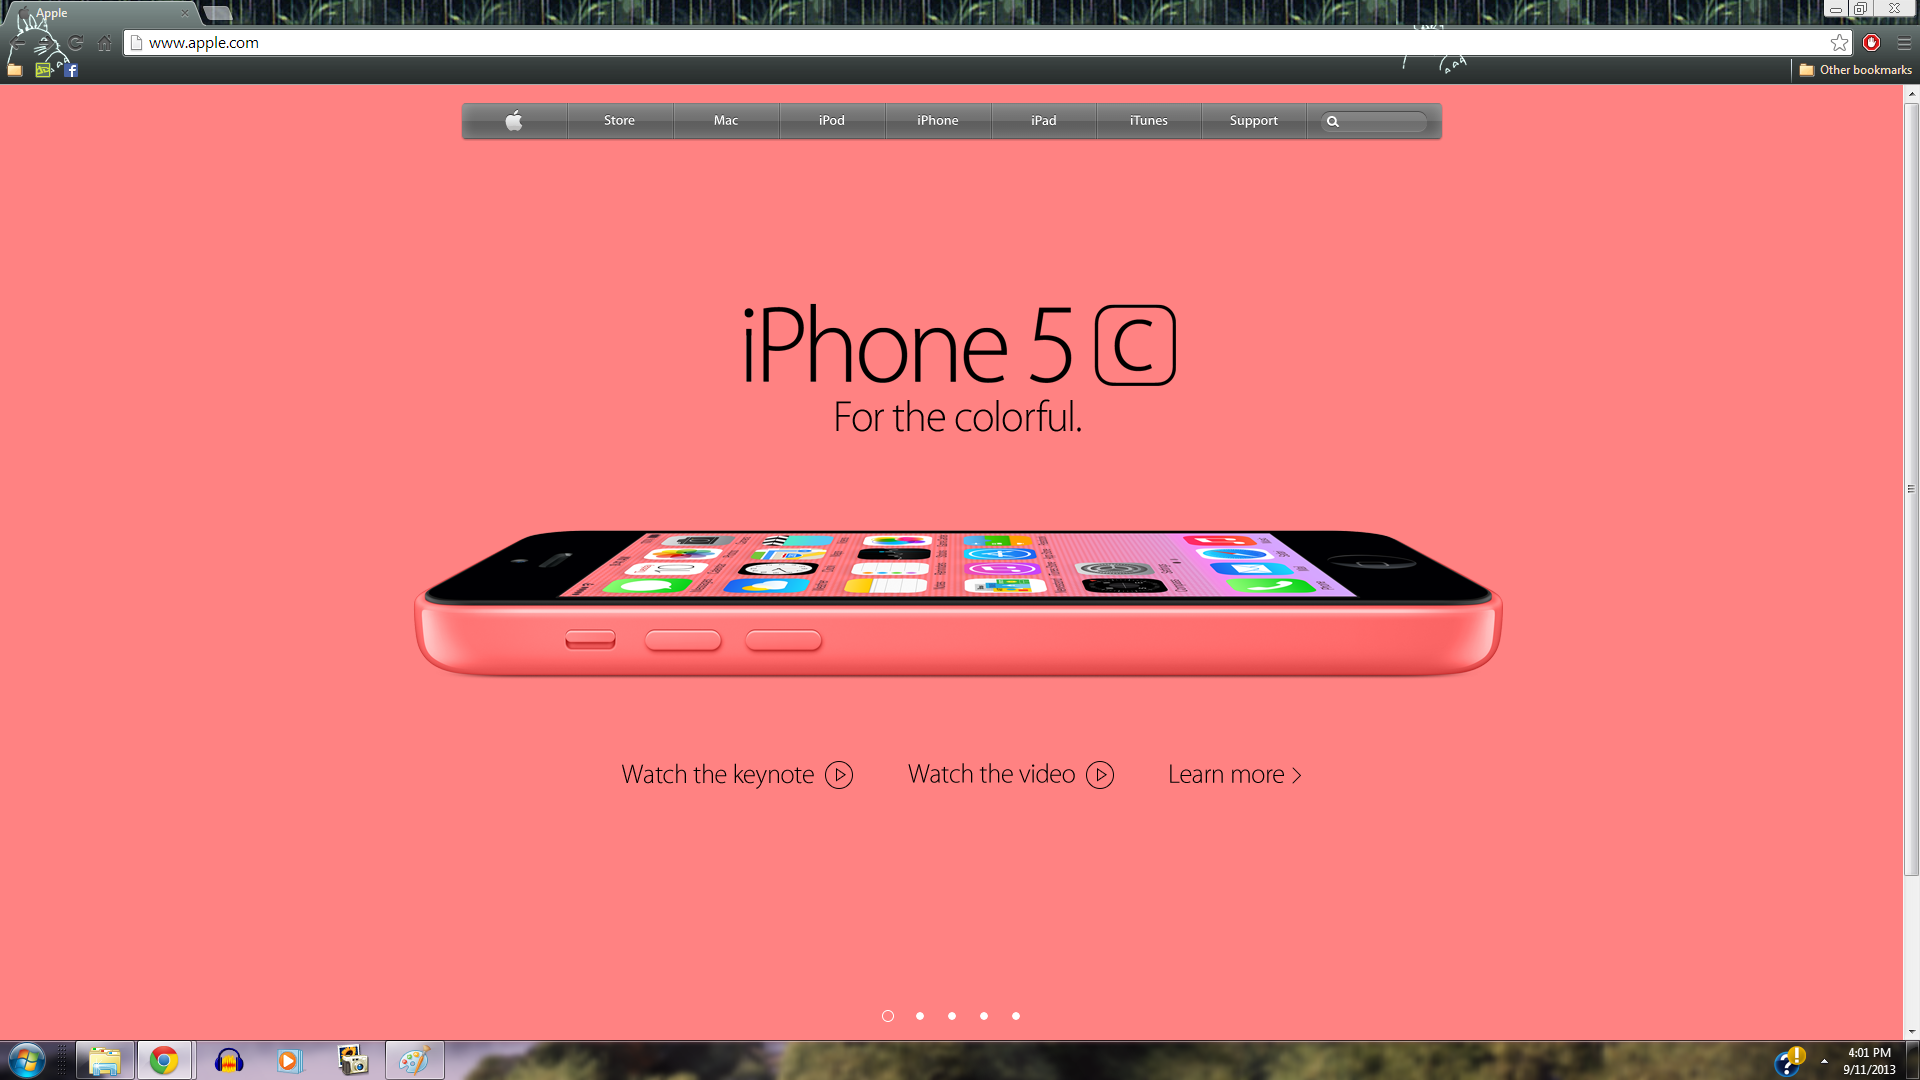 iPhone 5c Pink Apple Homepage